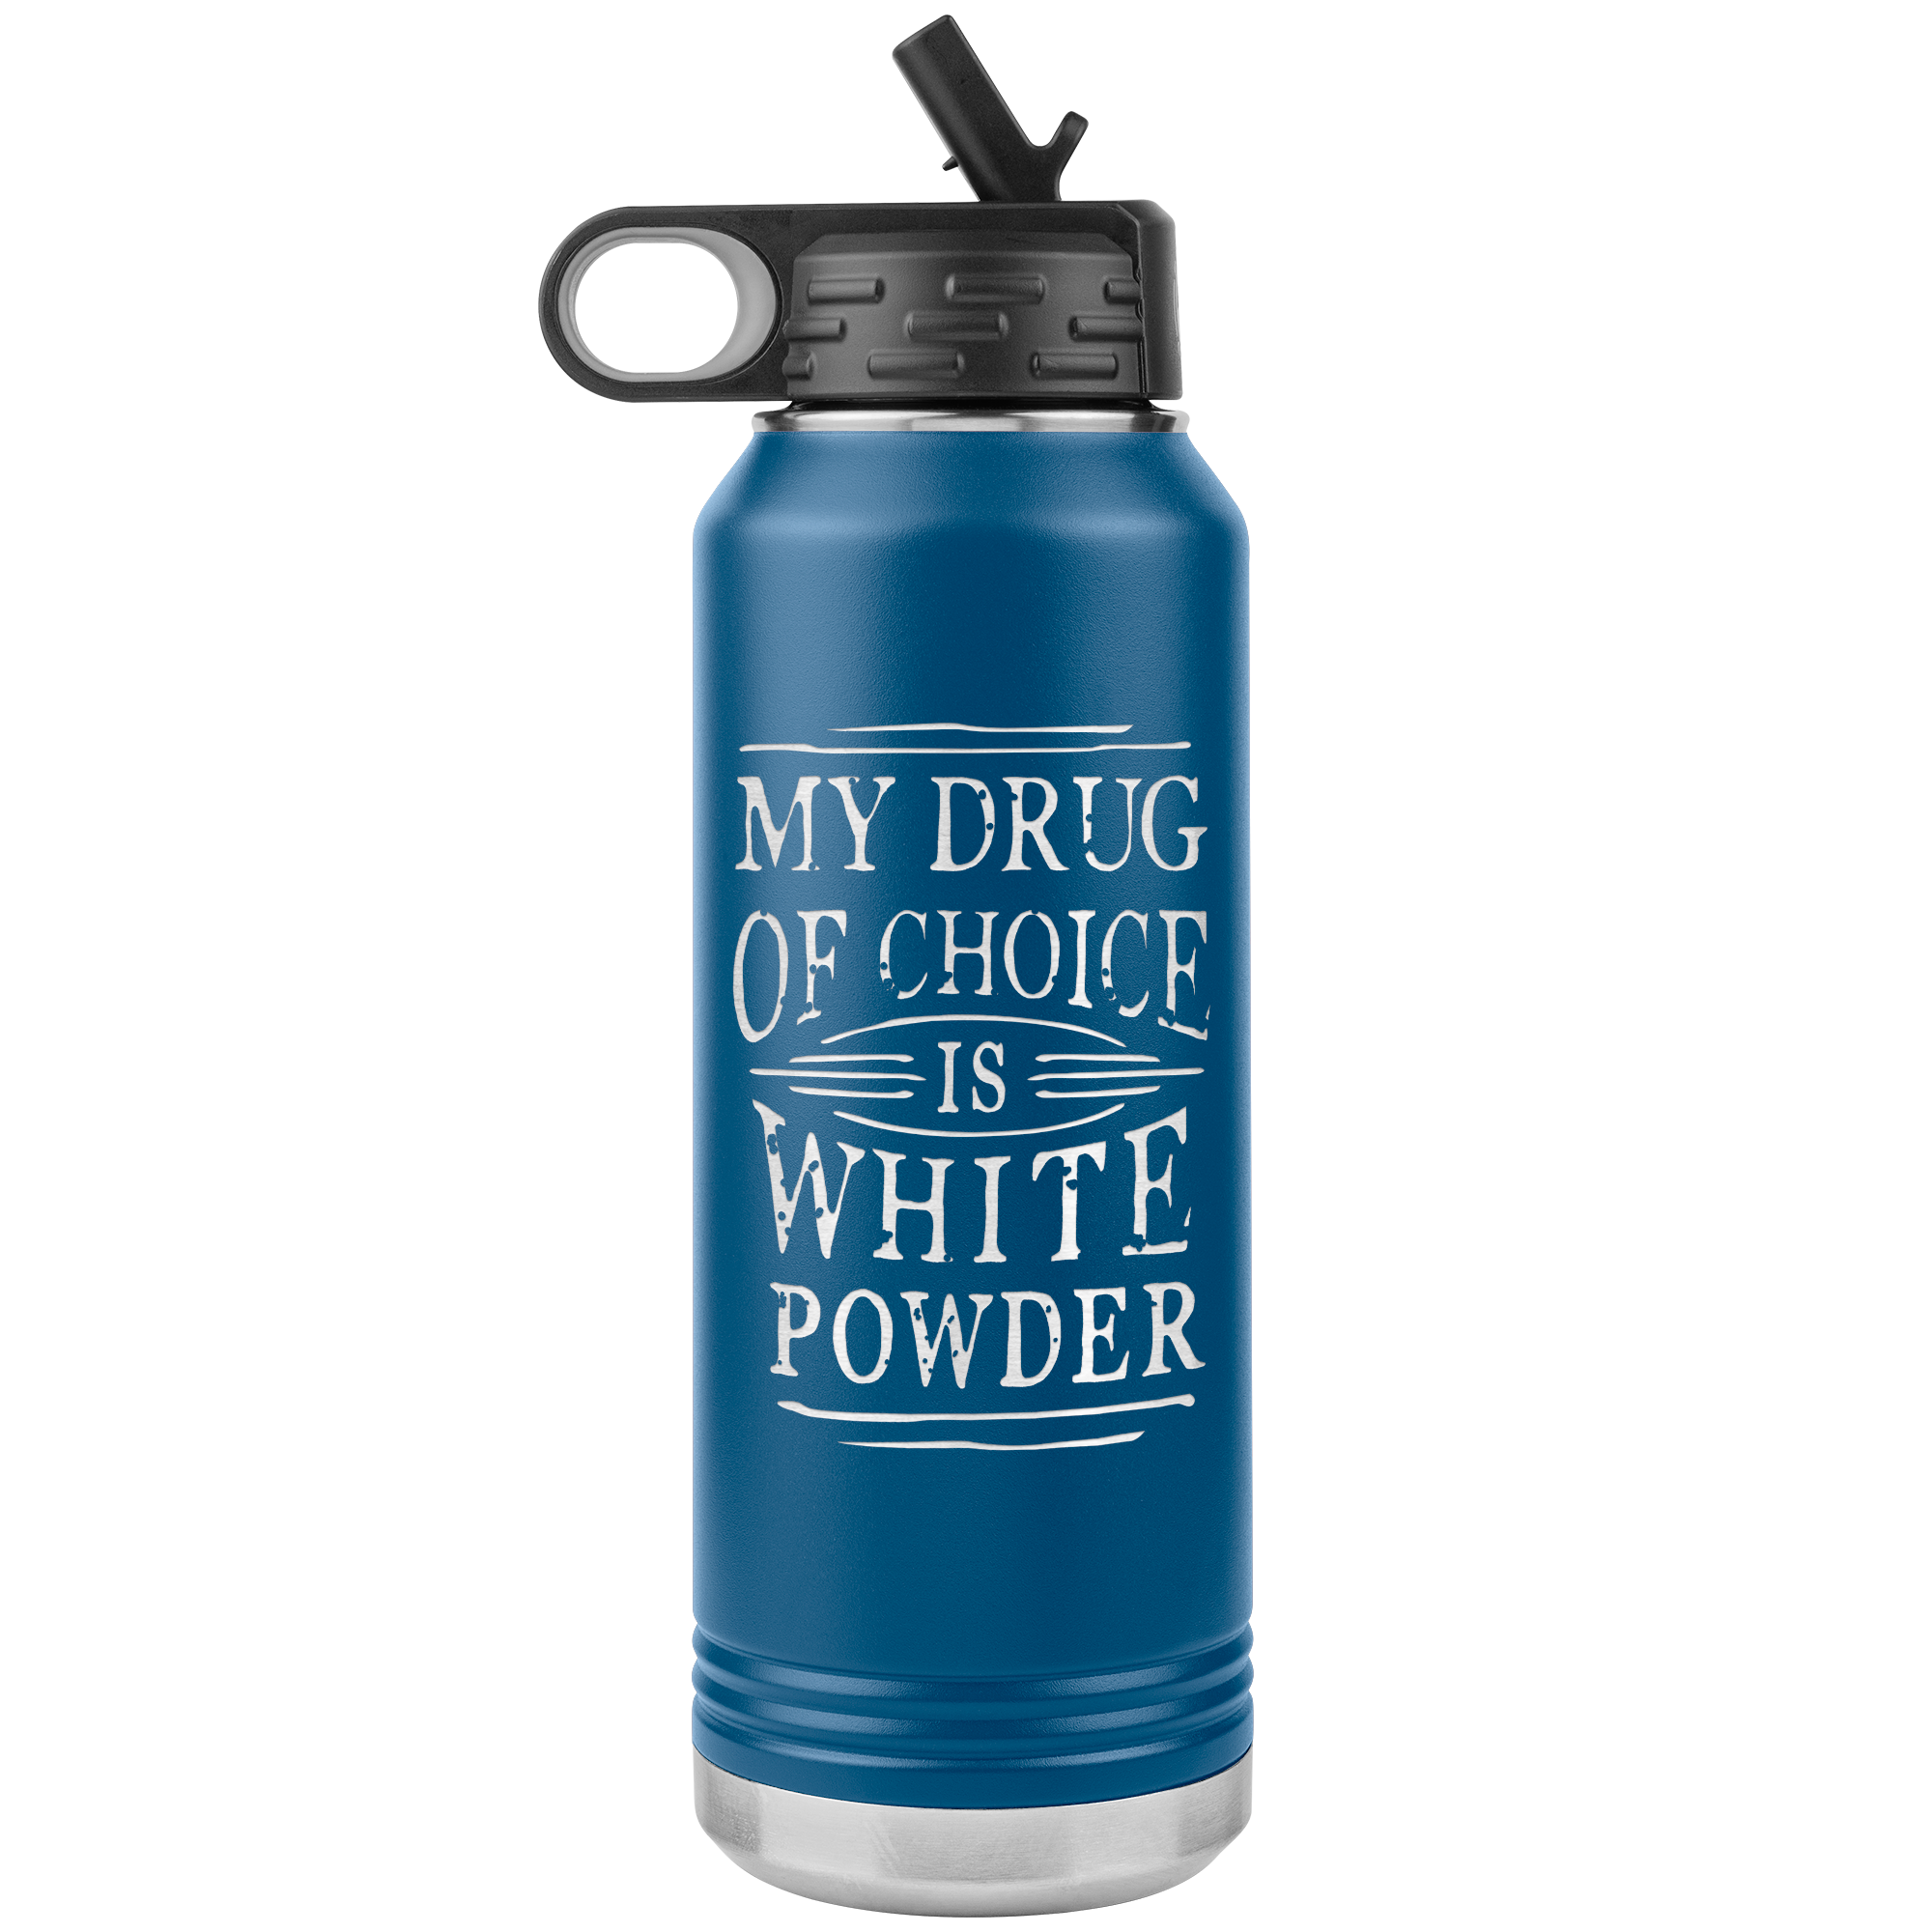 My Drug Of Choice Is White Powder 32oz Water Bottle Tumbler